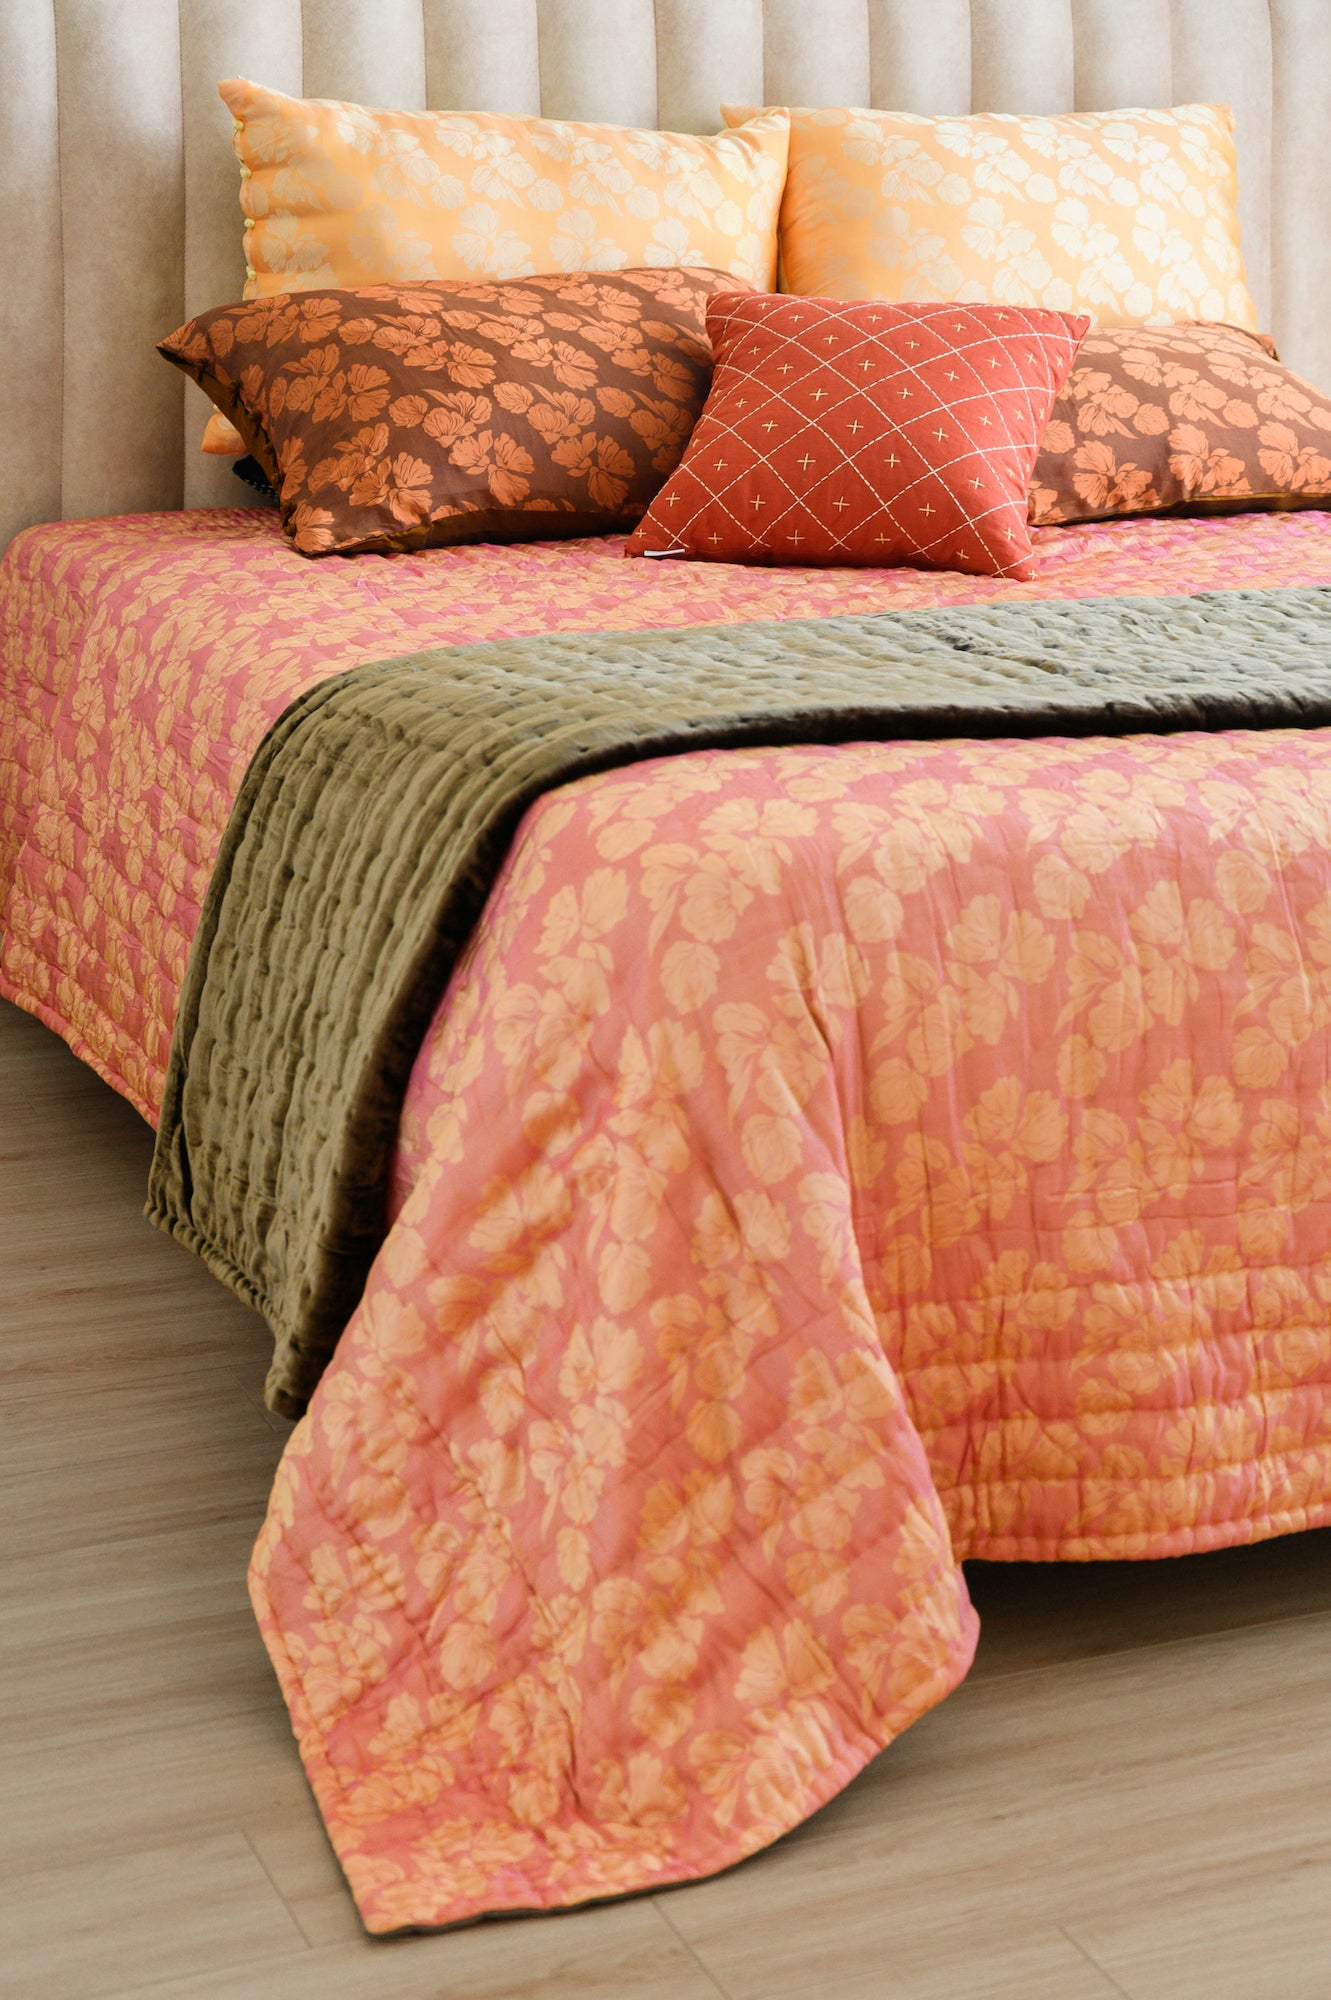 theannamhouse,brown,bedding